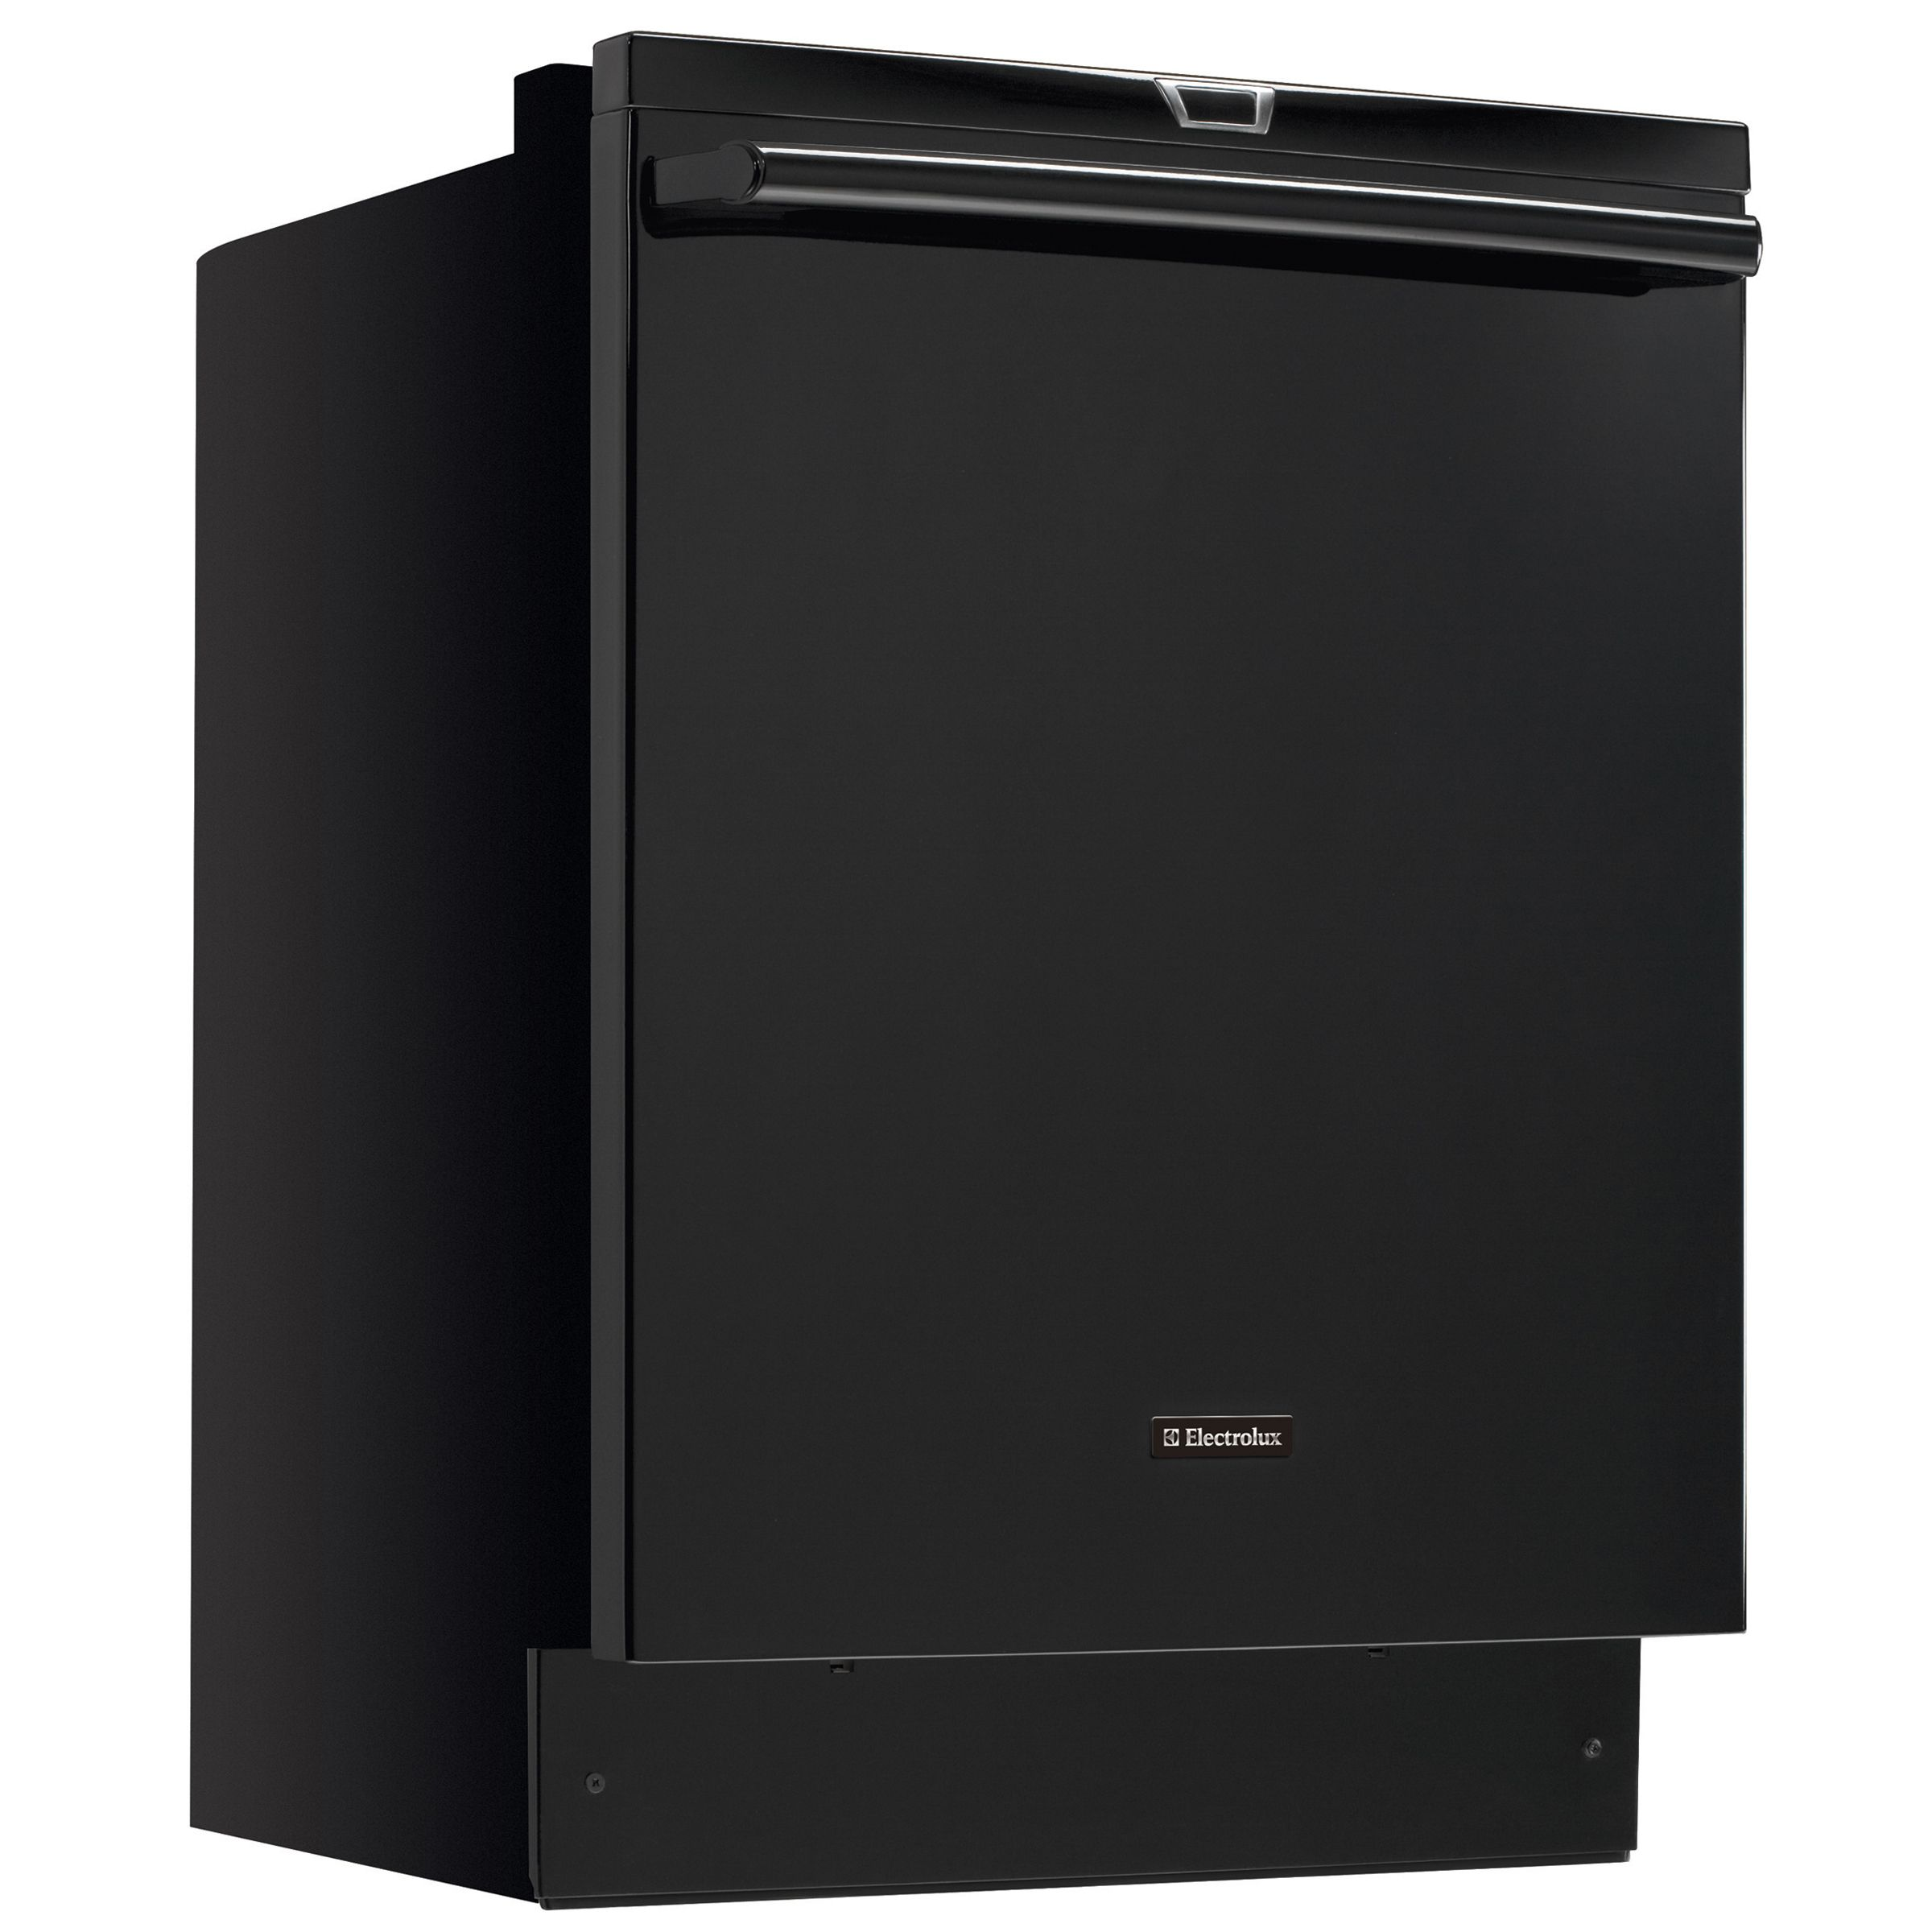 Electrolux 24 in. Built-In Dishwasher (EIDW6305G)